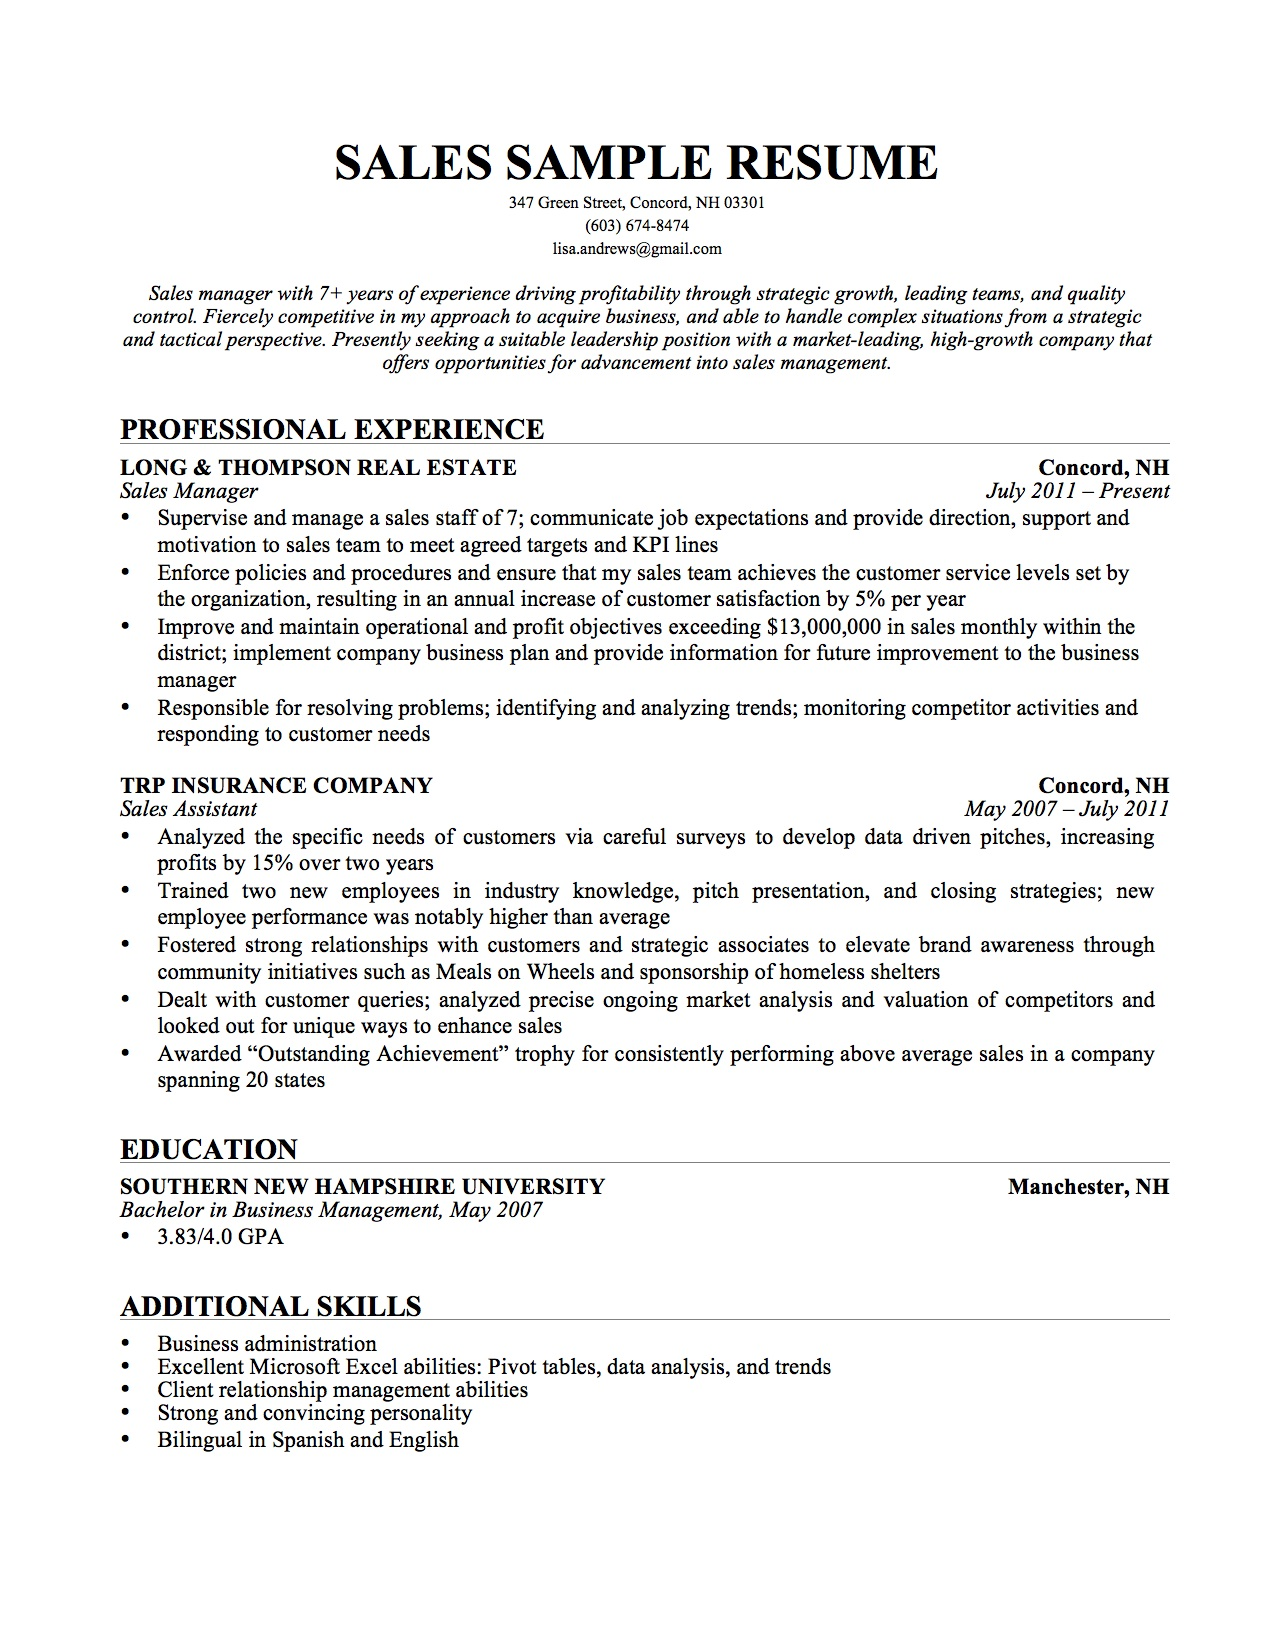 References On Resume Example  how to give references in resume     Reentrycorps Headlines Resume References Page For Proggramming  imagerackus       resume references page